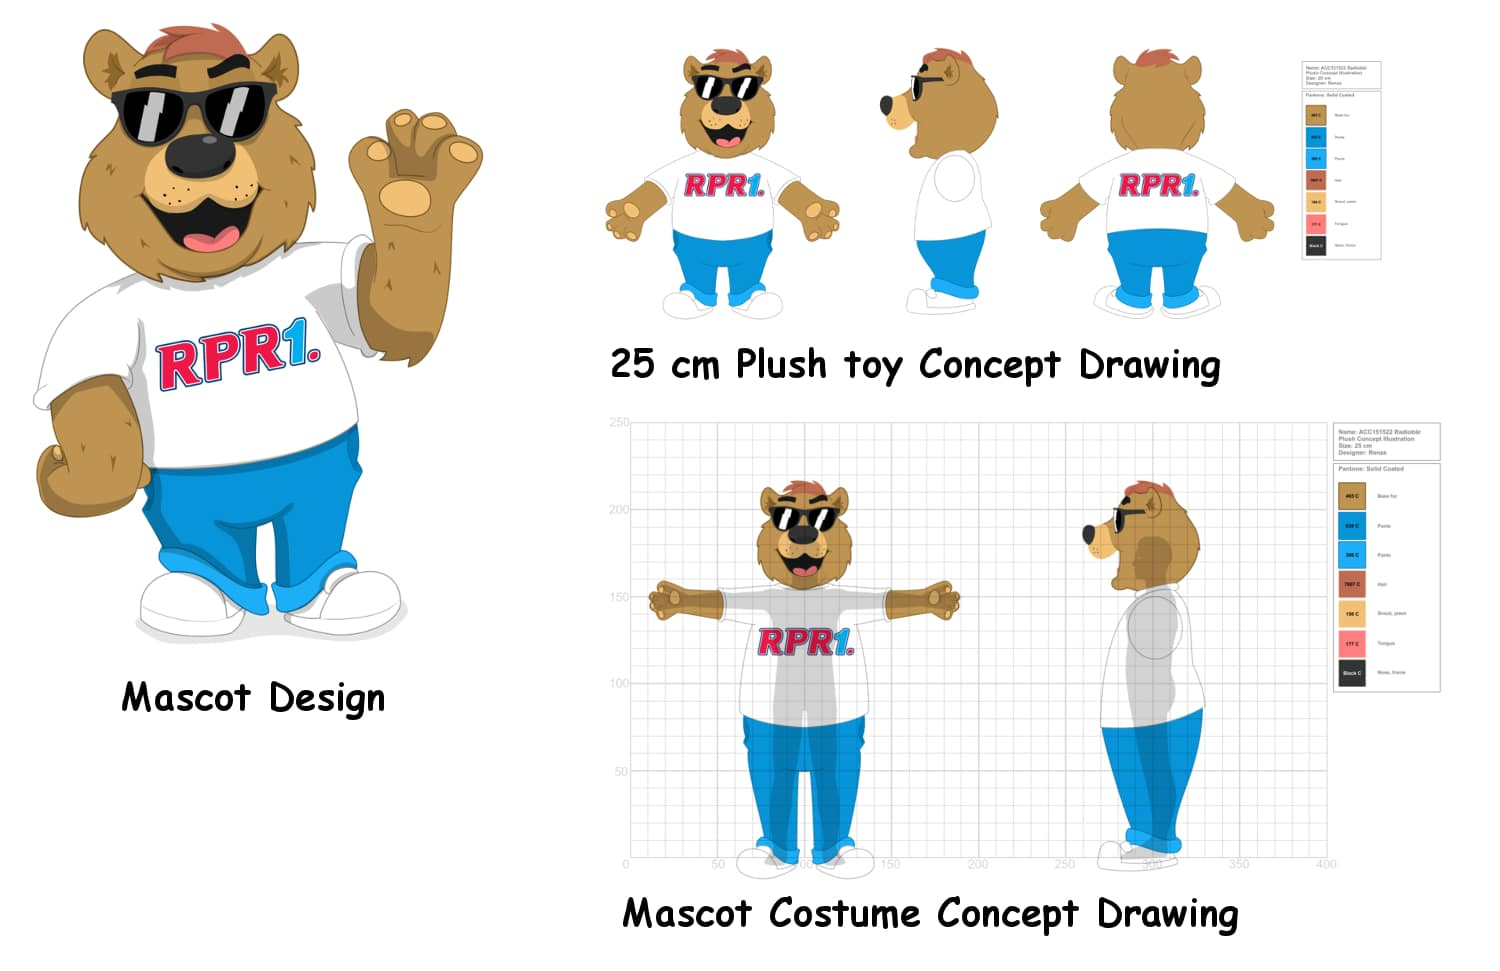 Radio Bear FREE Concept Drawings Mascot and Plush toy